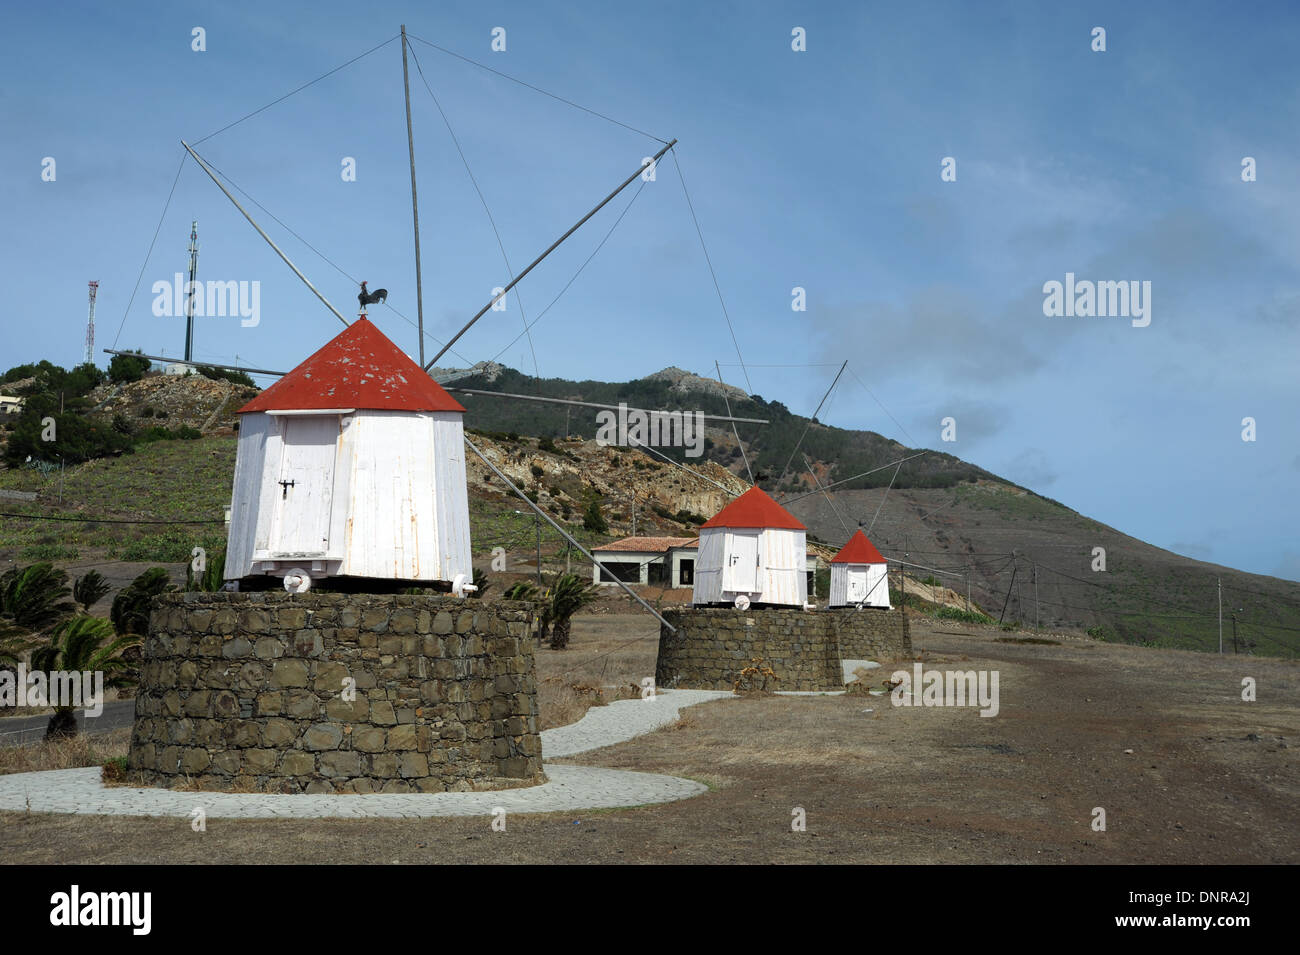 Windmills on the island of Porto Santo near Madeira in the Atlantic Ocean - Stock Image